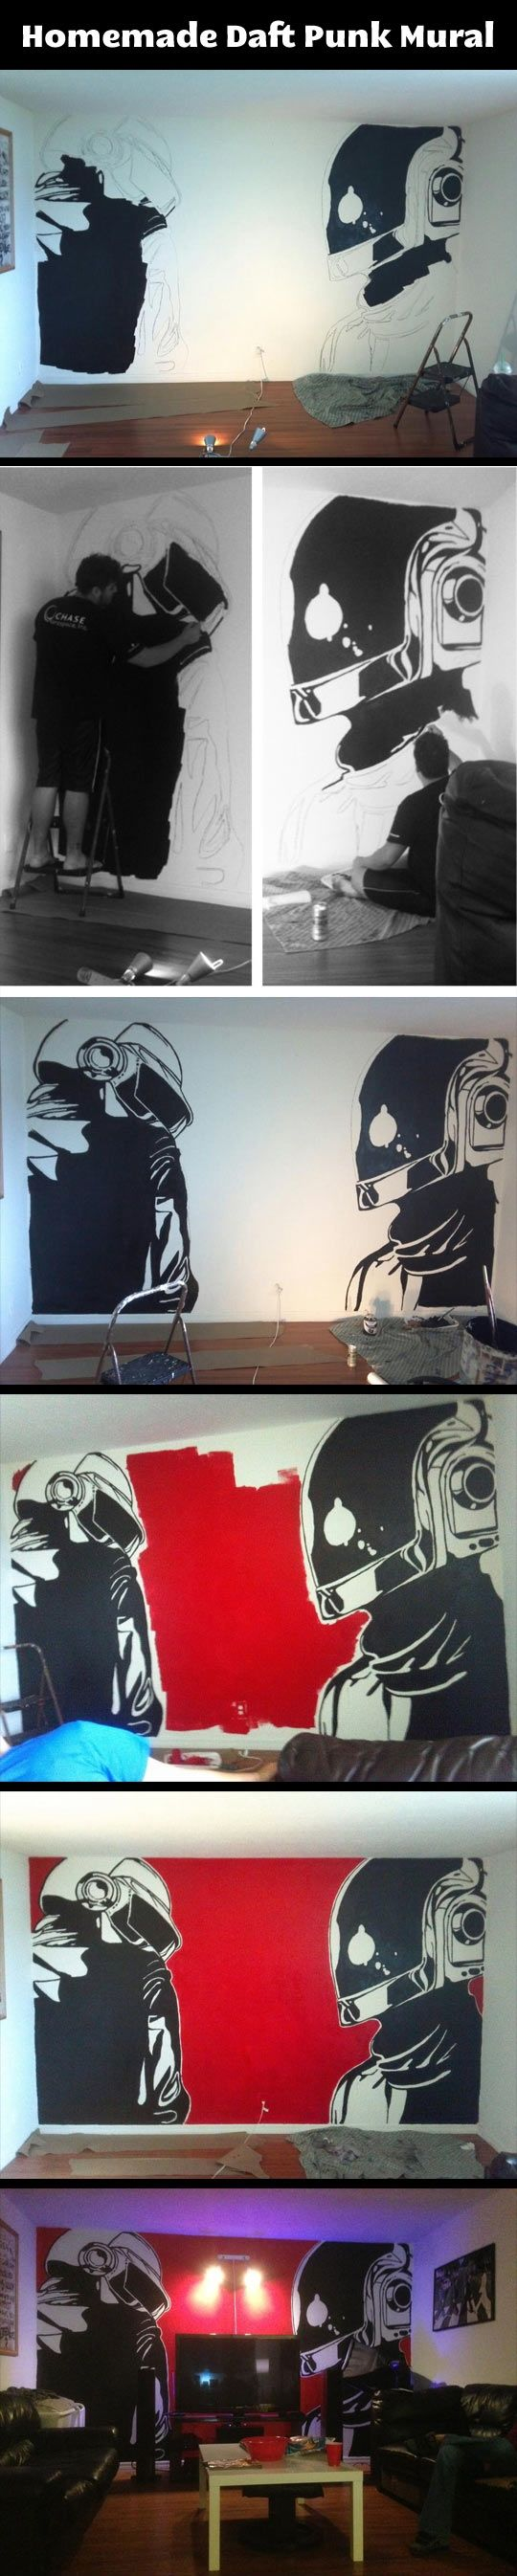 I know we said that the walls should be grayscale, but this is pretty cool.